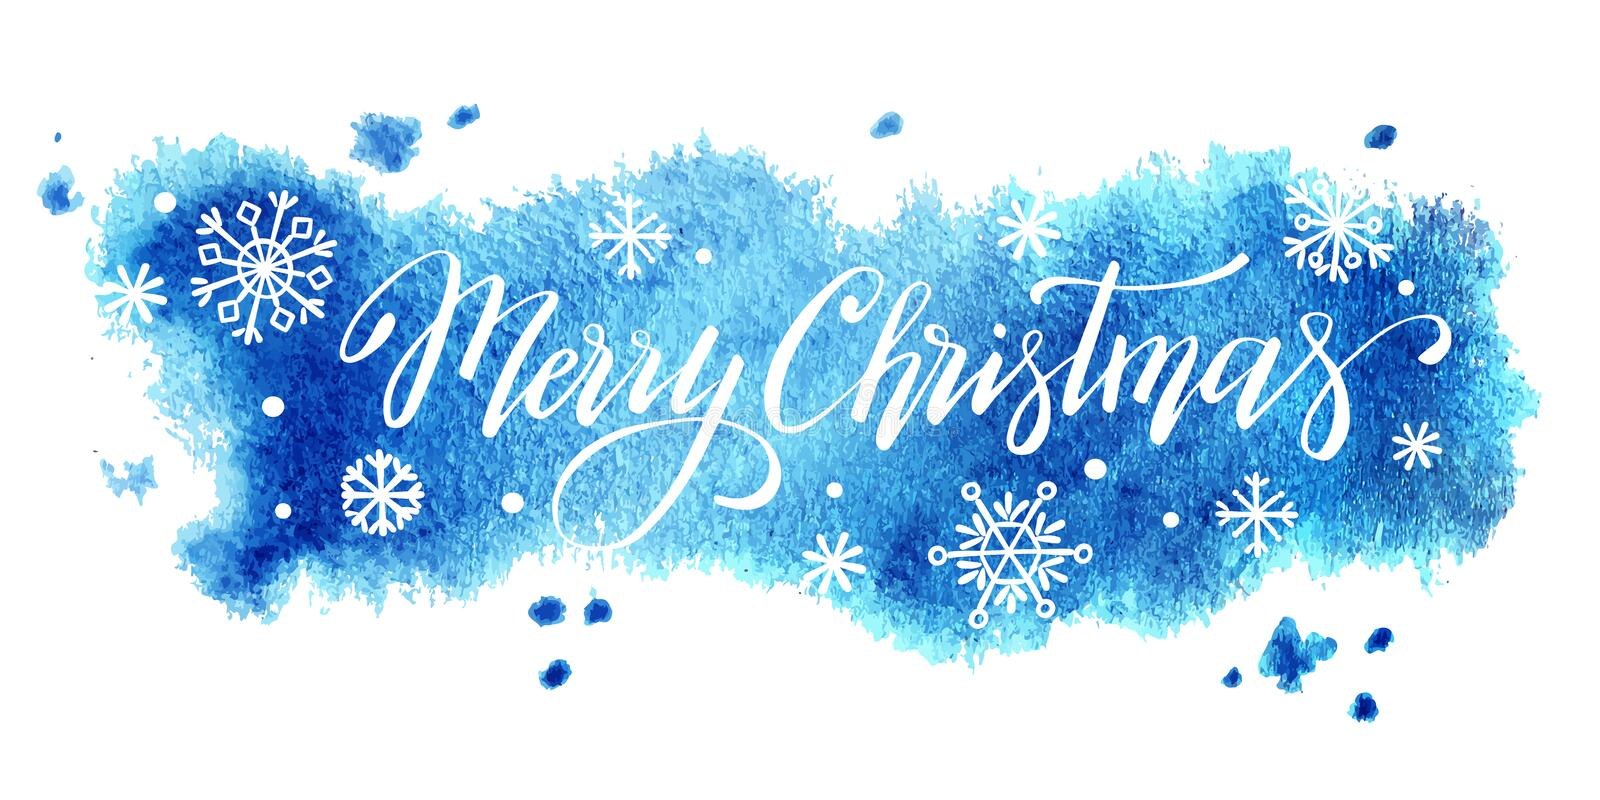 Merry Christmas hand lettering on watercolor background, vector  illustration royalty free illustration